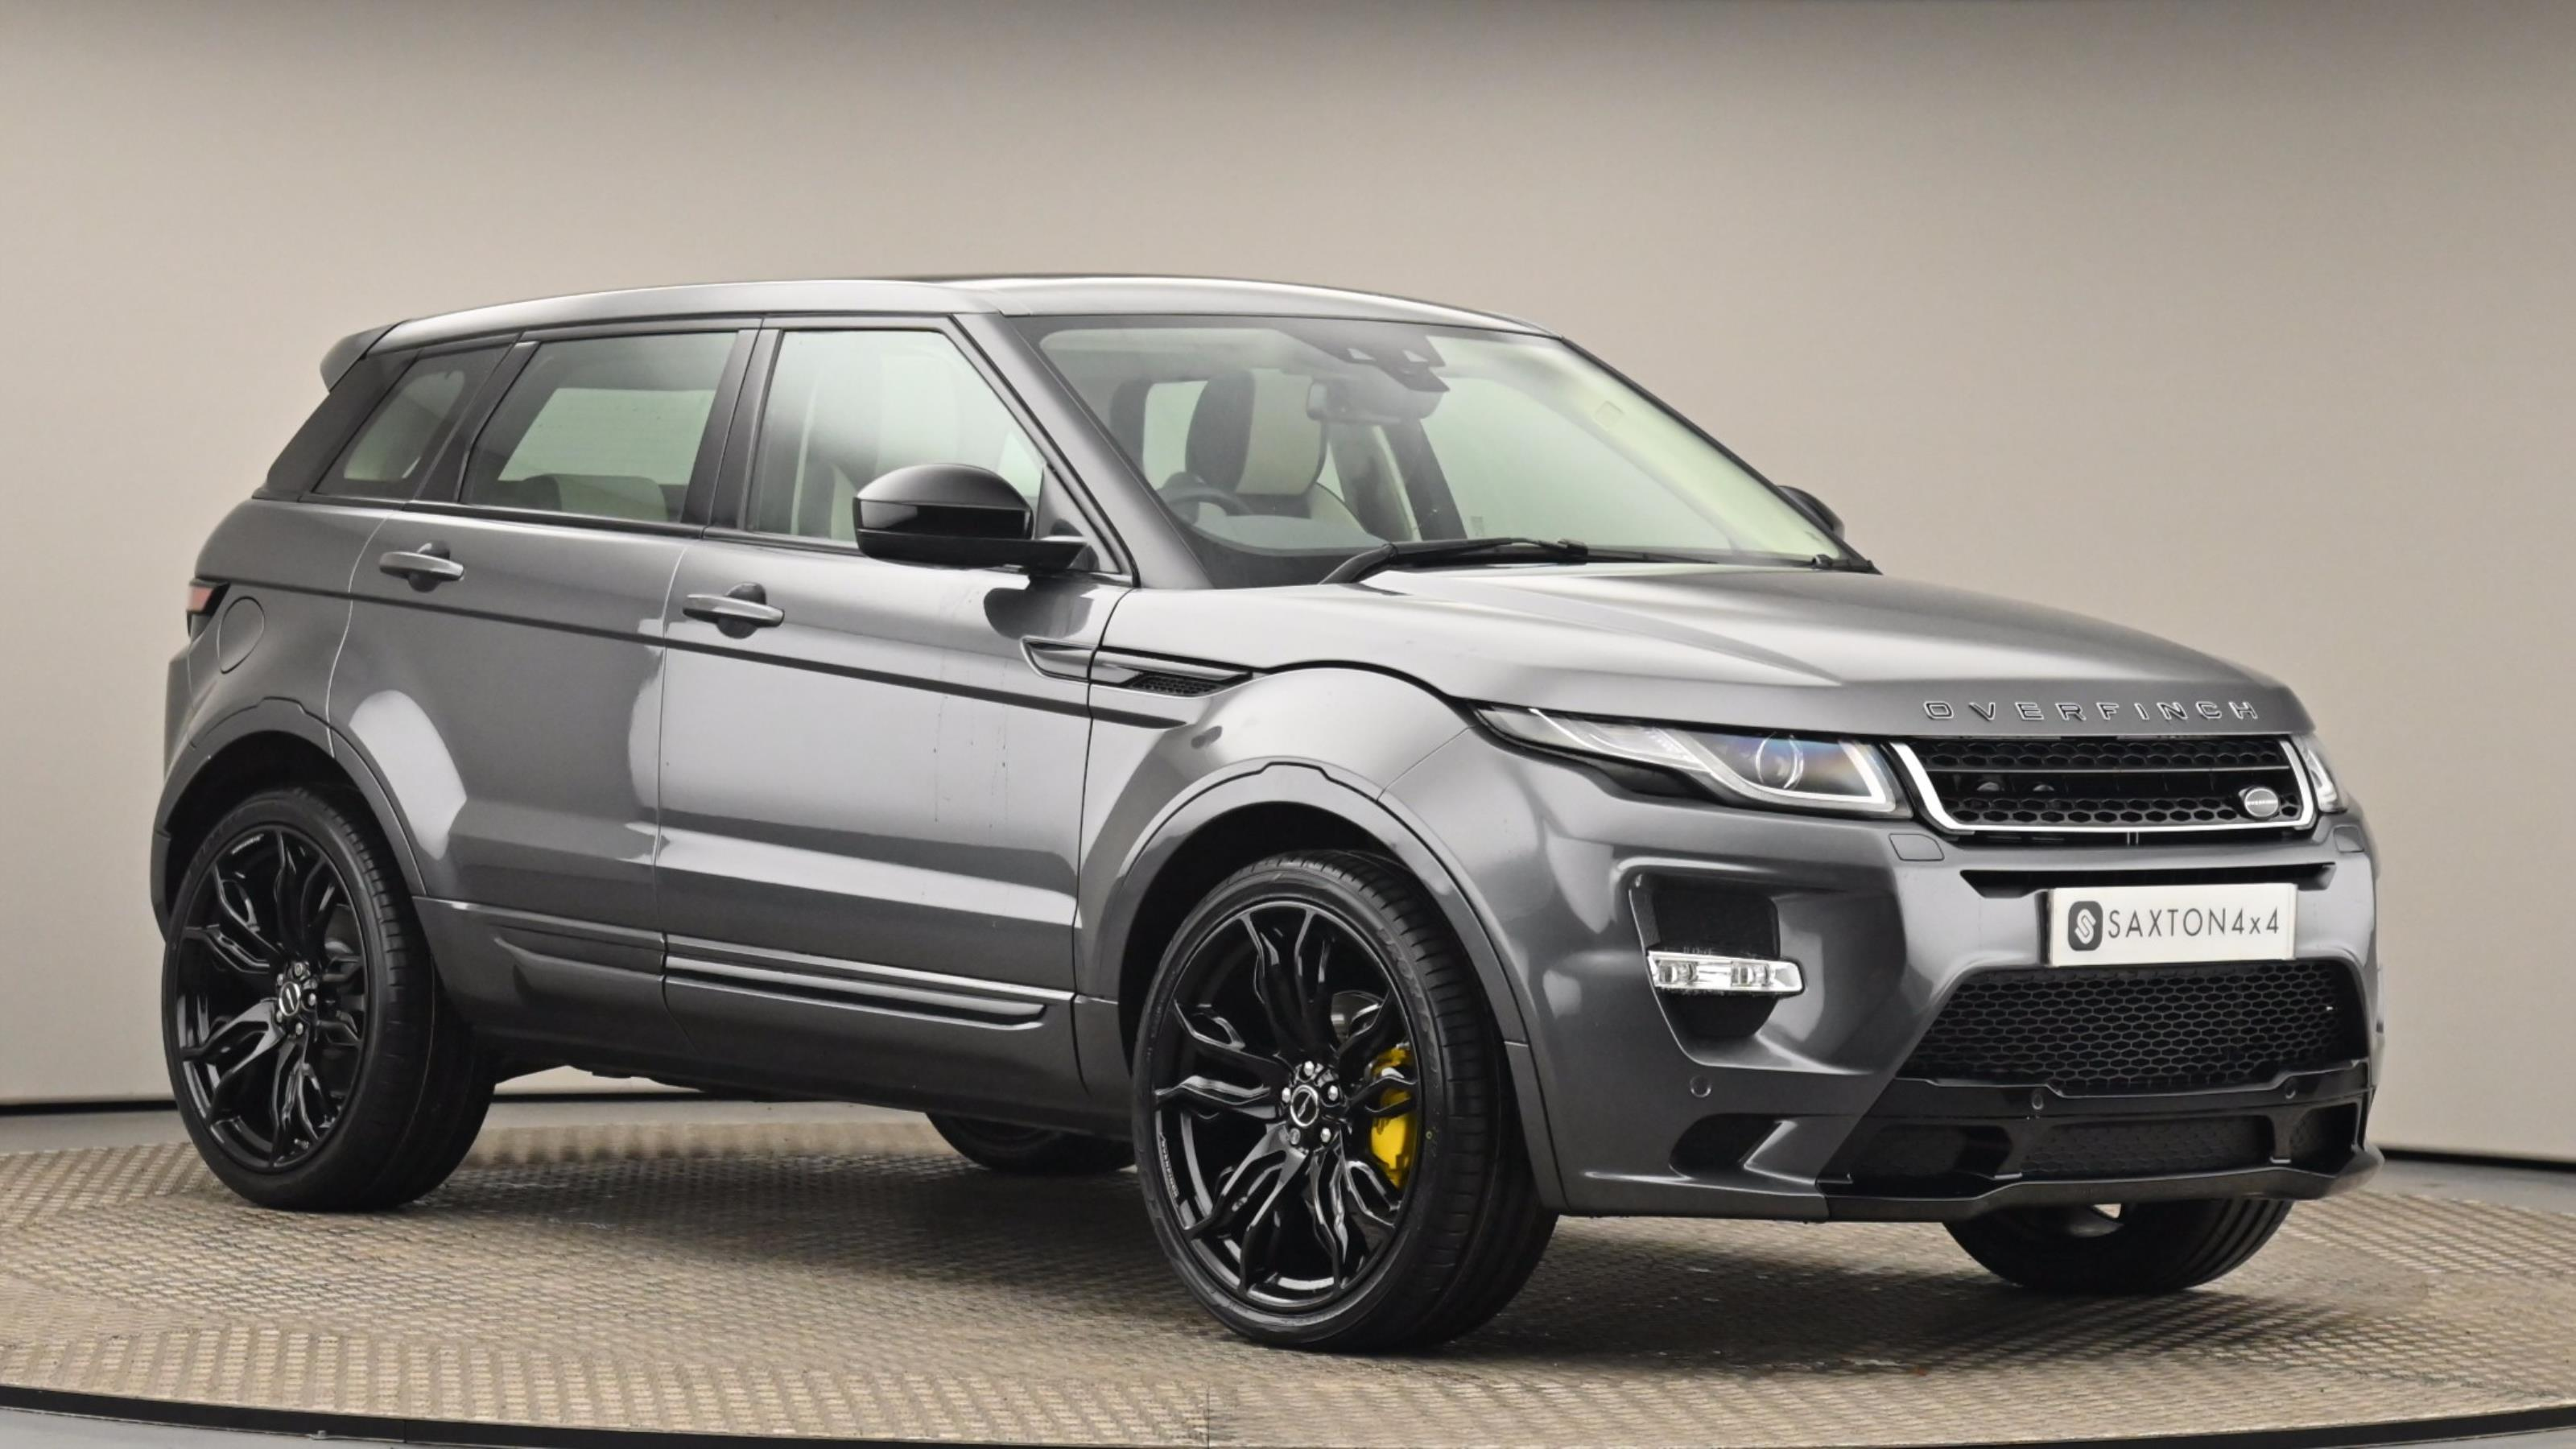 Used 2015 Land Rover RANGE ROVER EVOQUE 2.0 TD4 SE Tech 5dr Auto at Saxton4x4